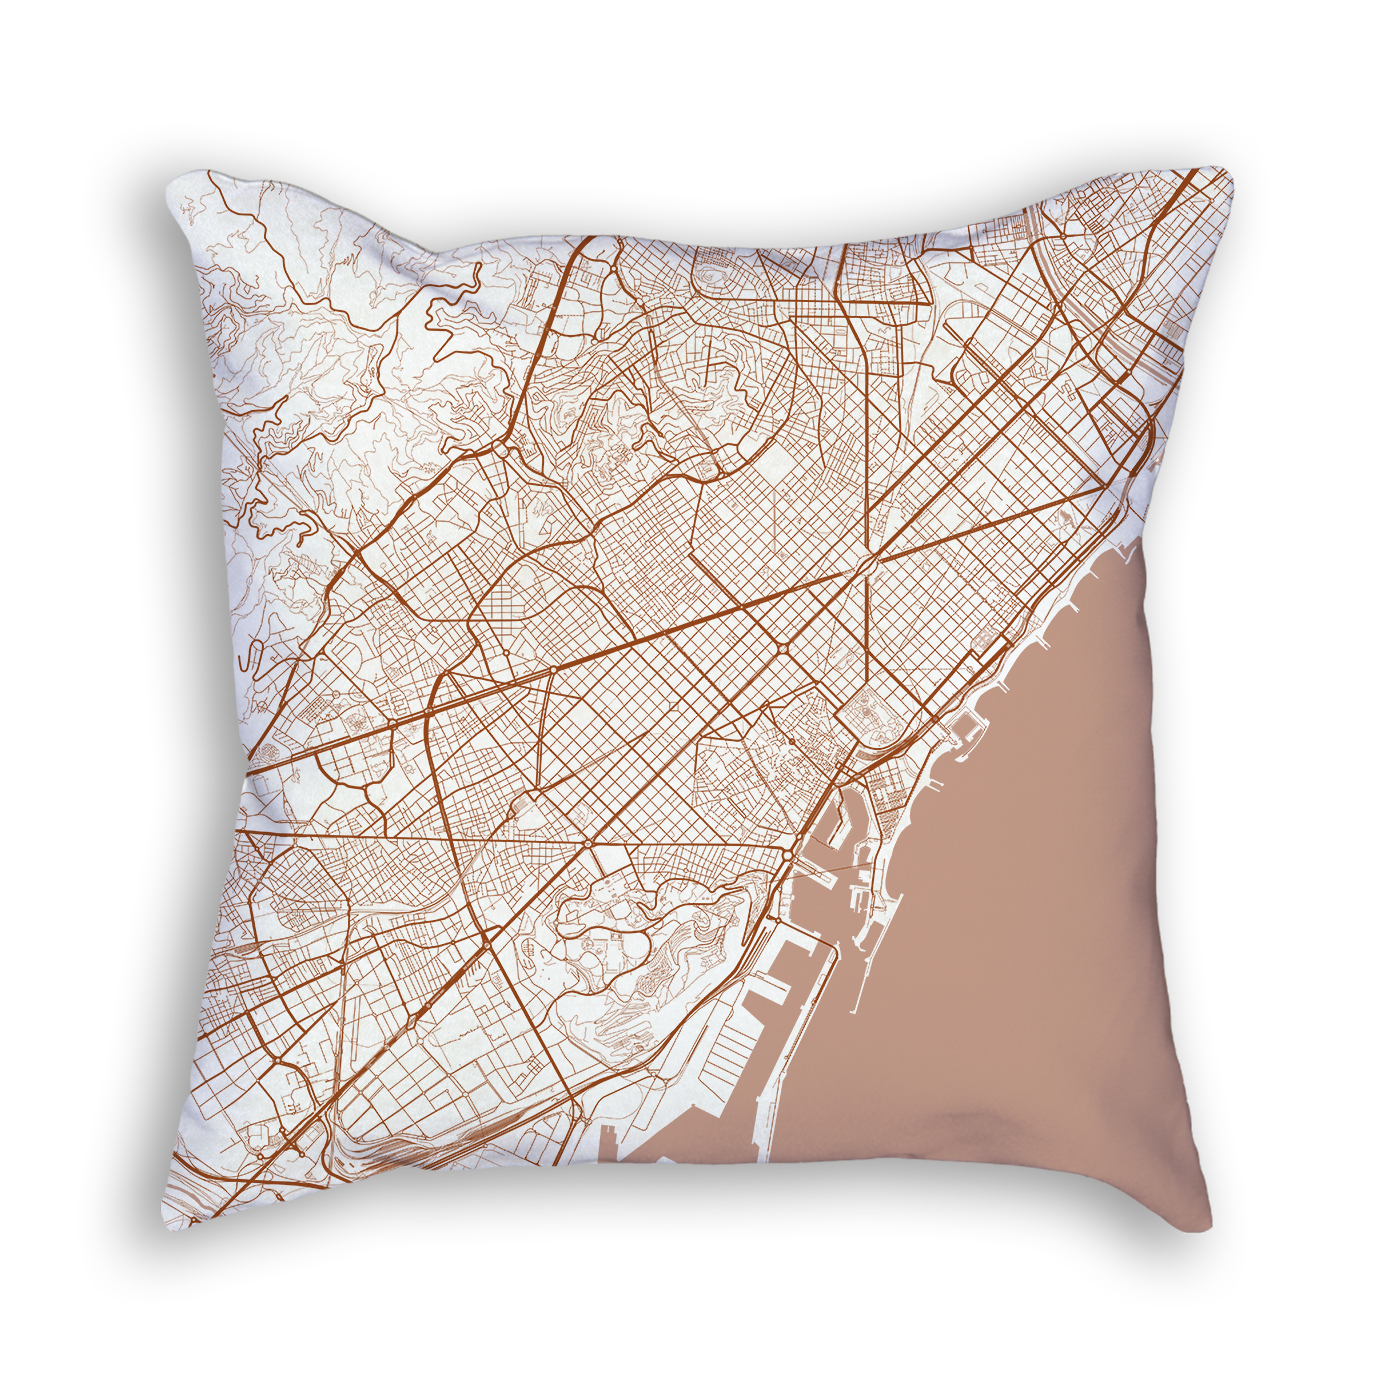 Barcelona Spain City Map Art Decorative Throw Pillow